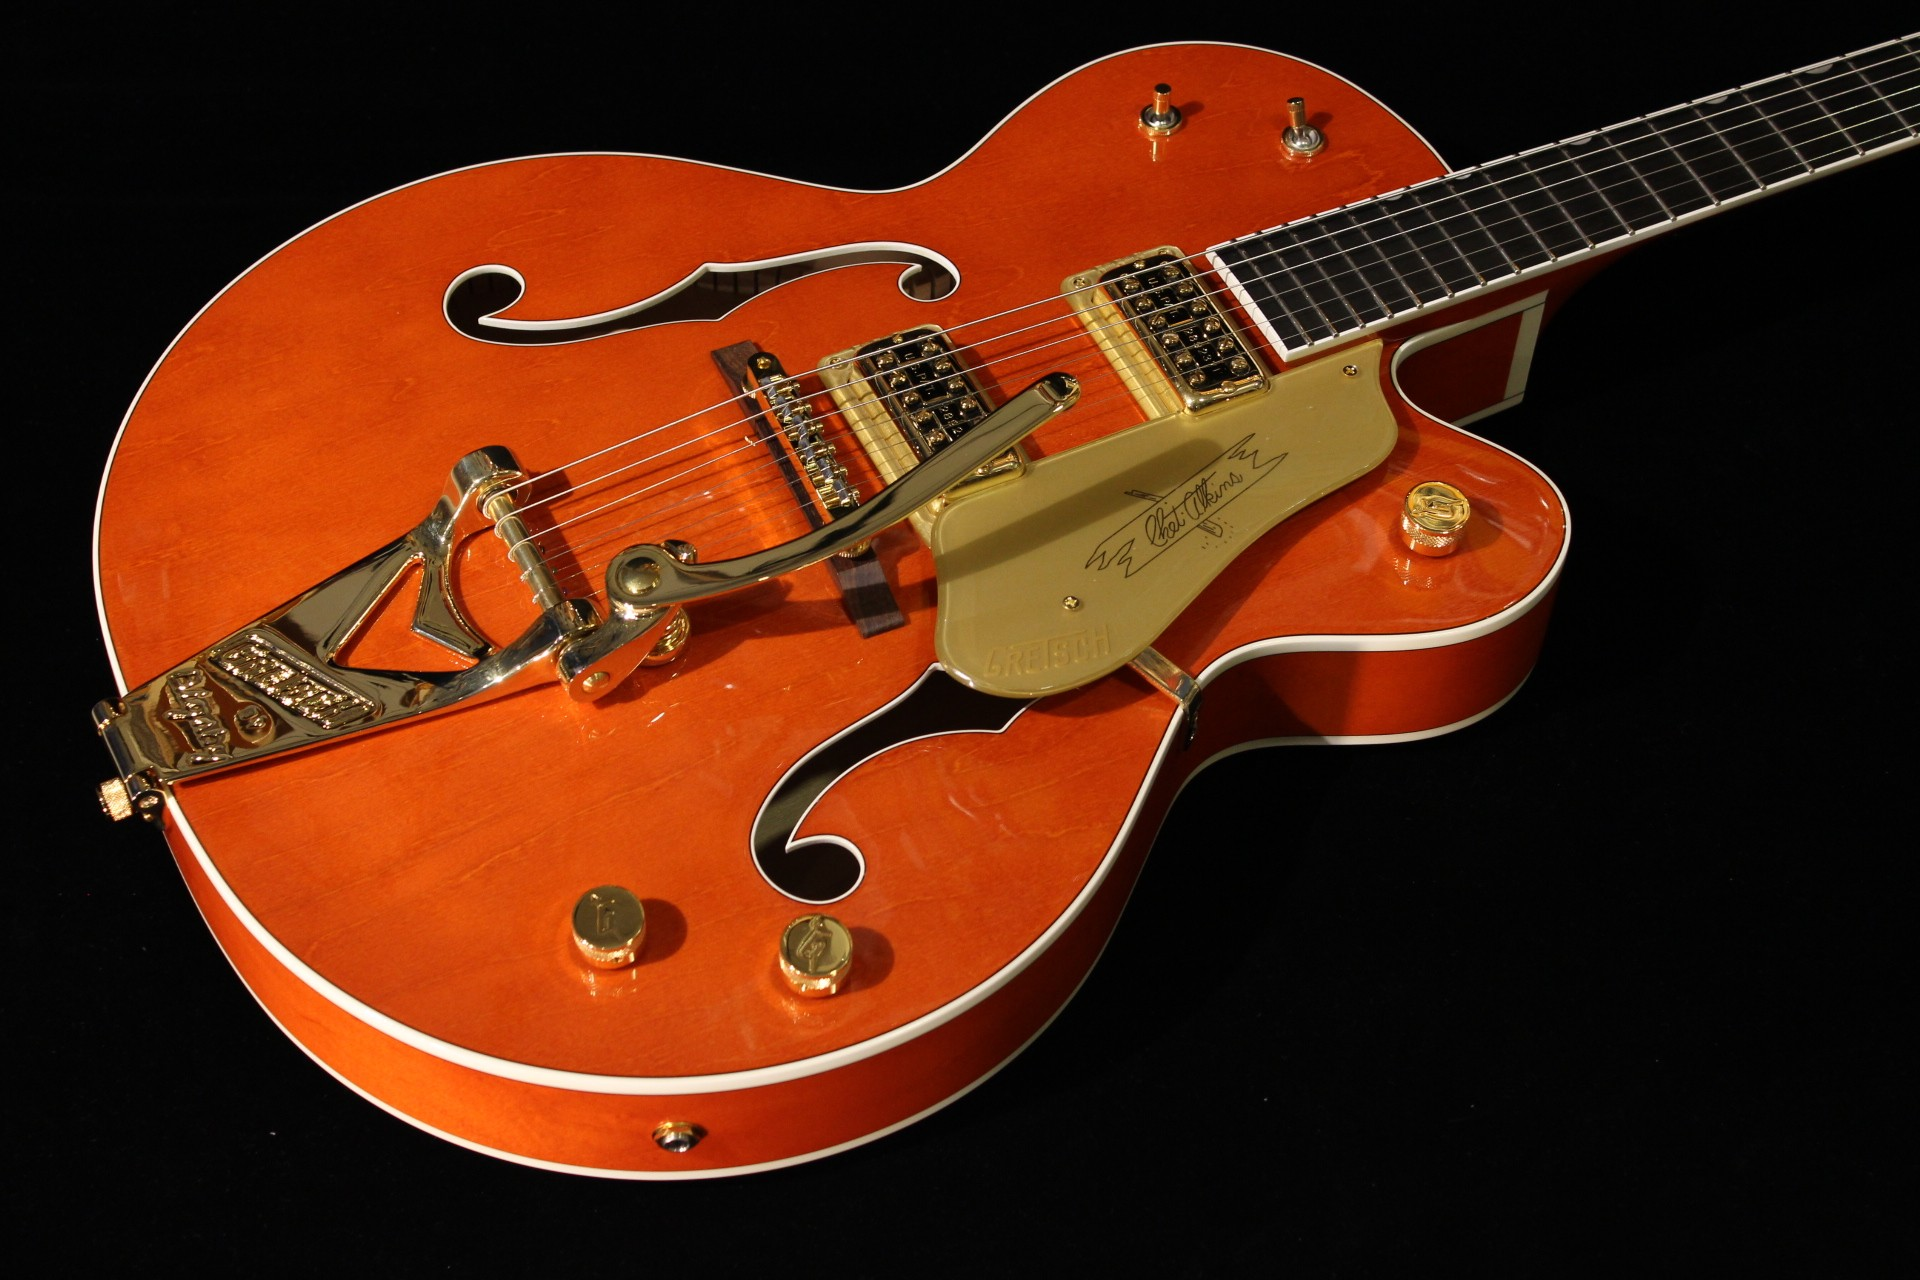 gretsch g6120 chet atkins hollow body orange stain gino guitars. Black Bedroom Furniture Sets. Home Design Ideas